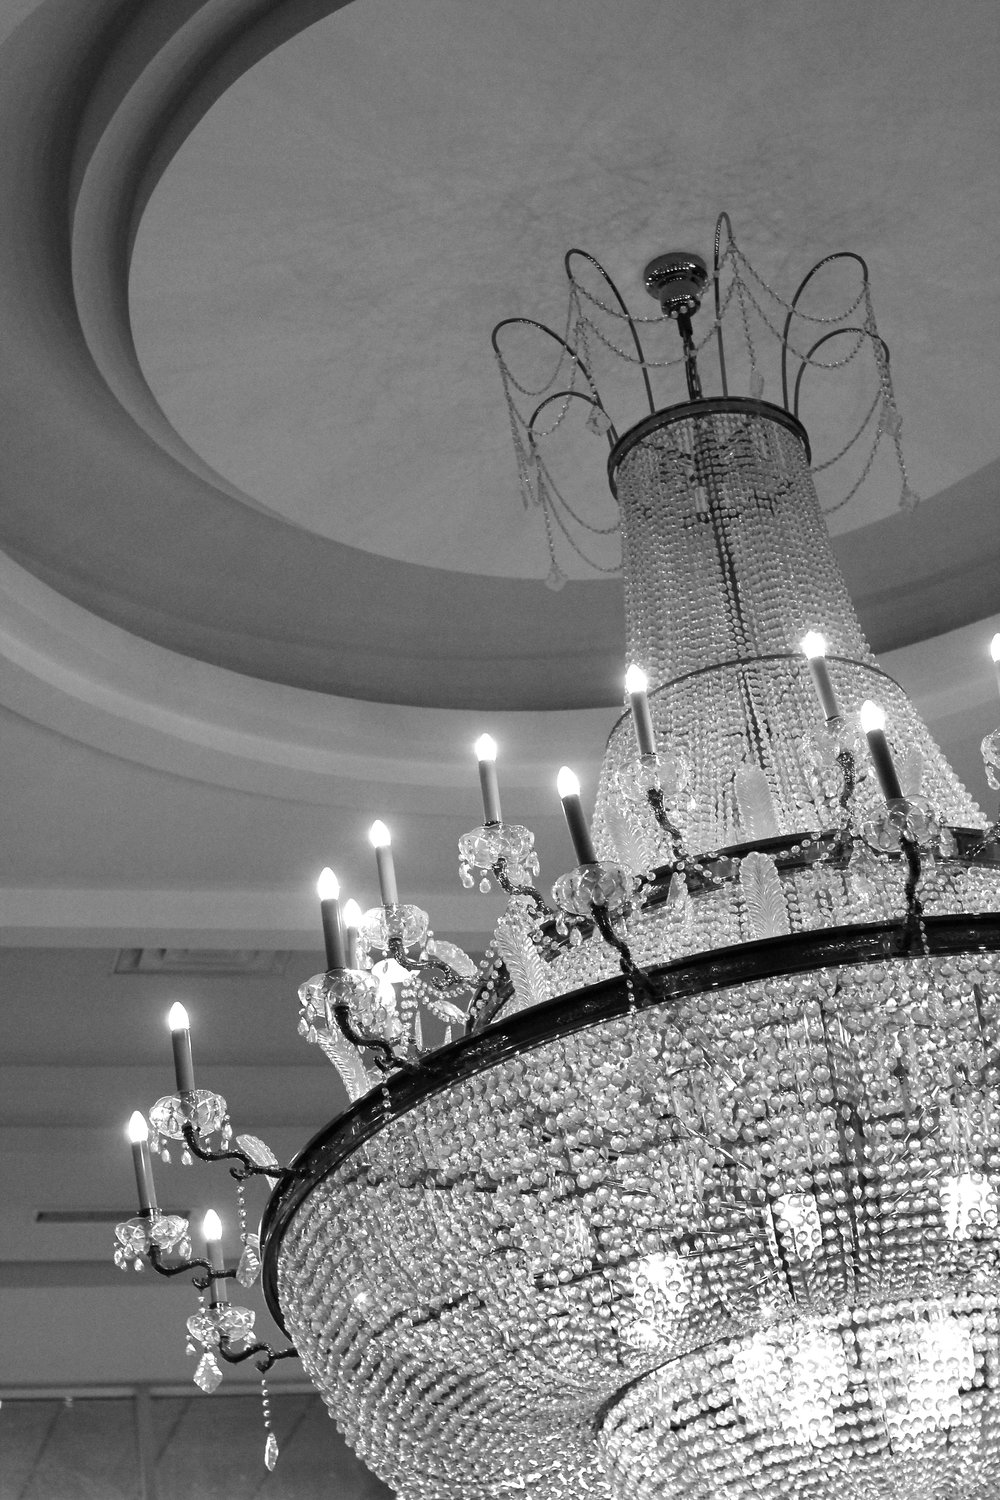 Chandelier in the Marriott Hotel  in Niagara Falls, ON Canada taken by Bratty B